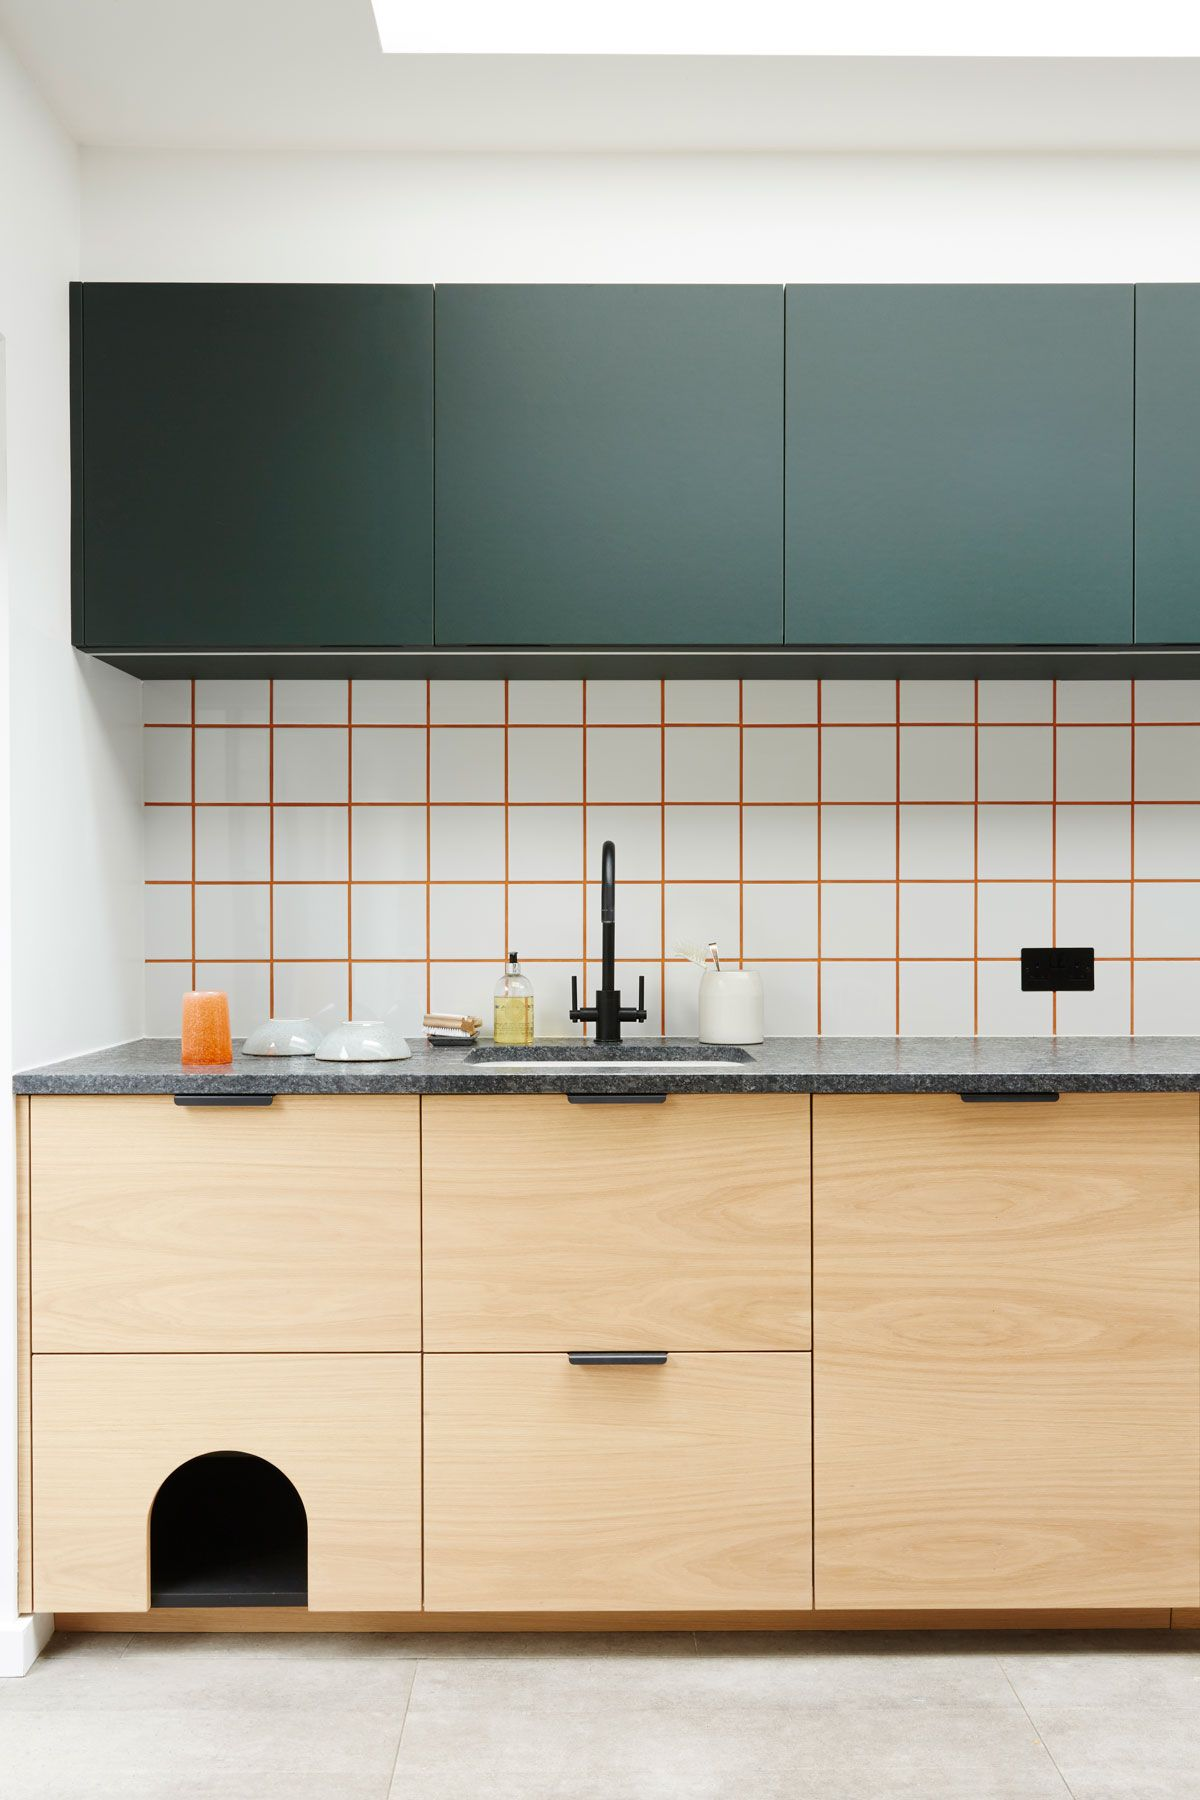 How to hack an Ikea kitchen with Hølte